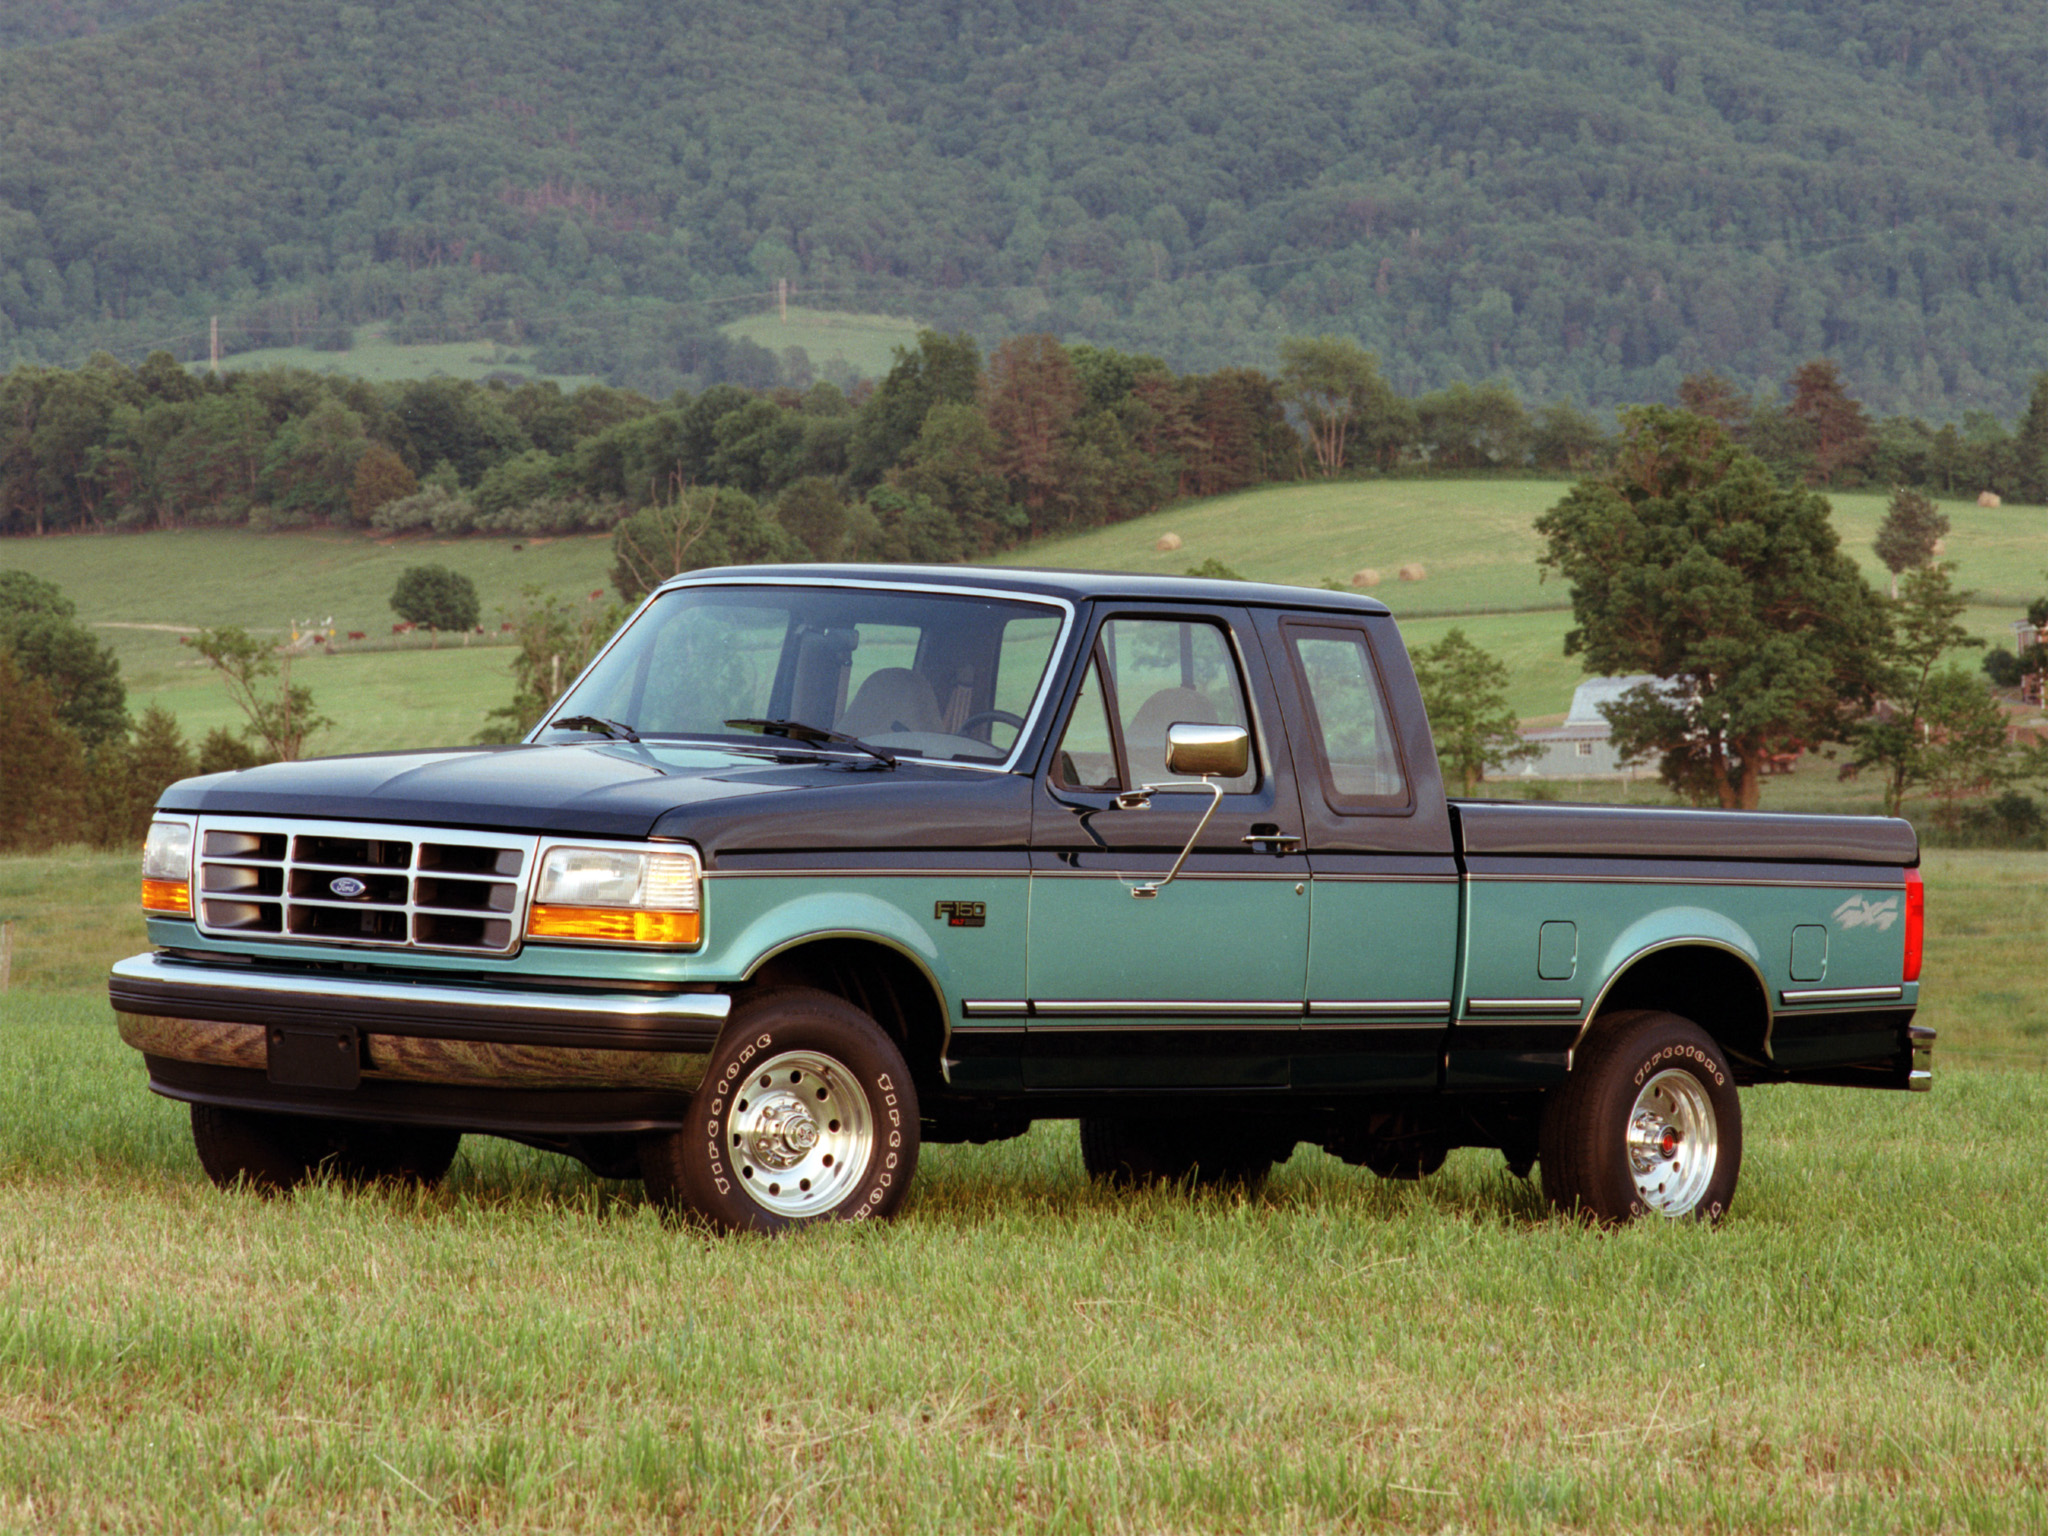 1992 Ford F 150 XLT 4x4 pickup wallpaper background 2048x1536